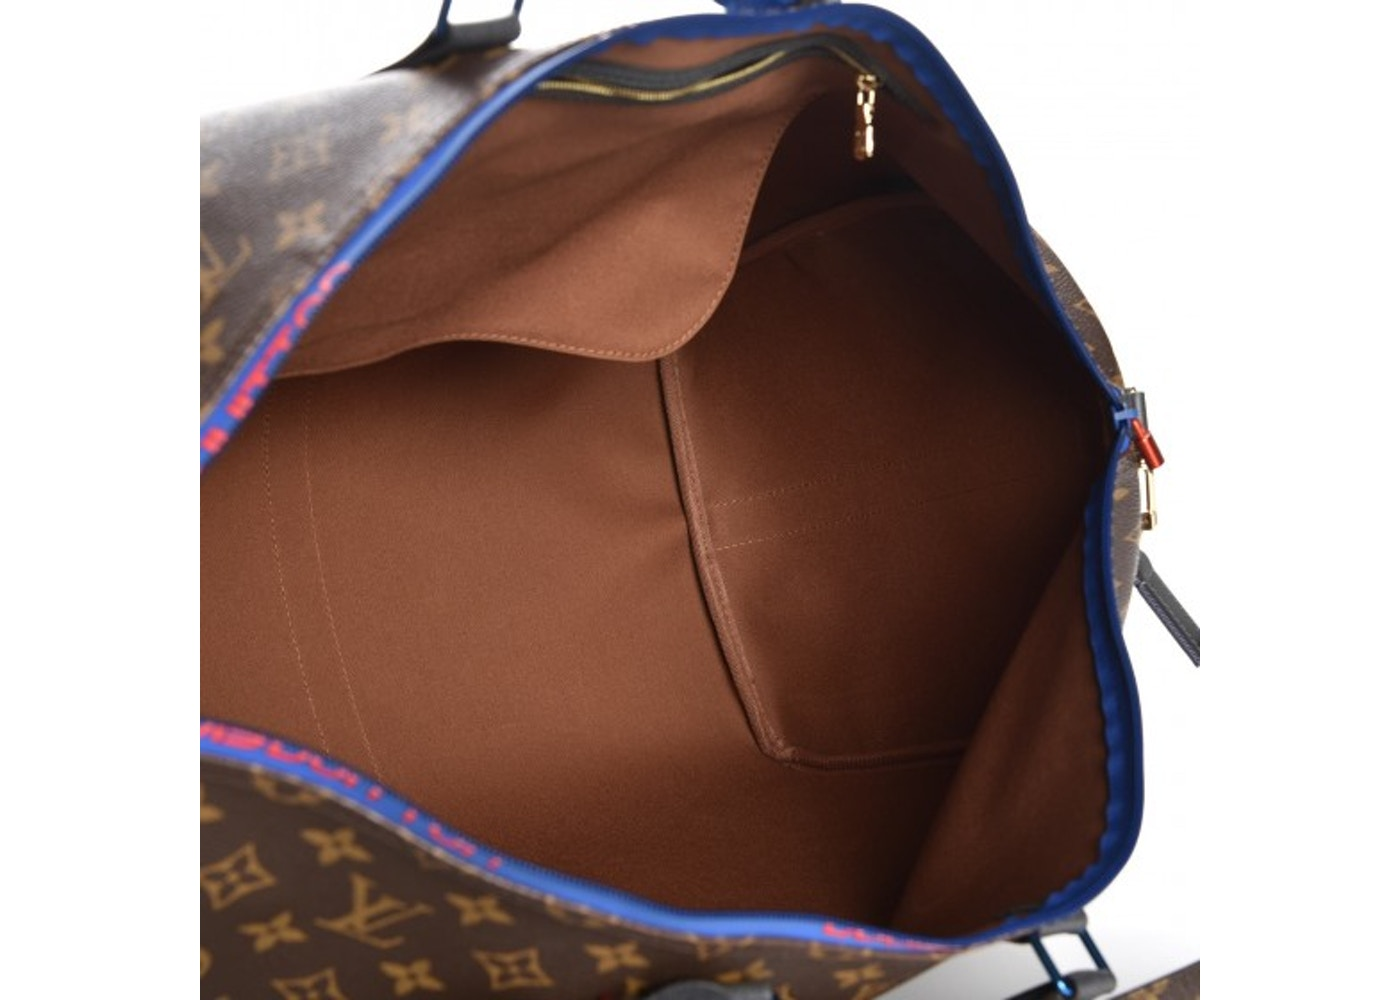 ce14c8cb6 Louis Vuitton Keepall Bandouliere Monogram Outdoor 55 Brown